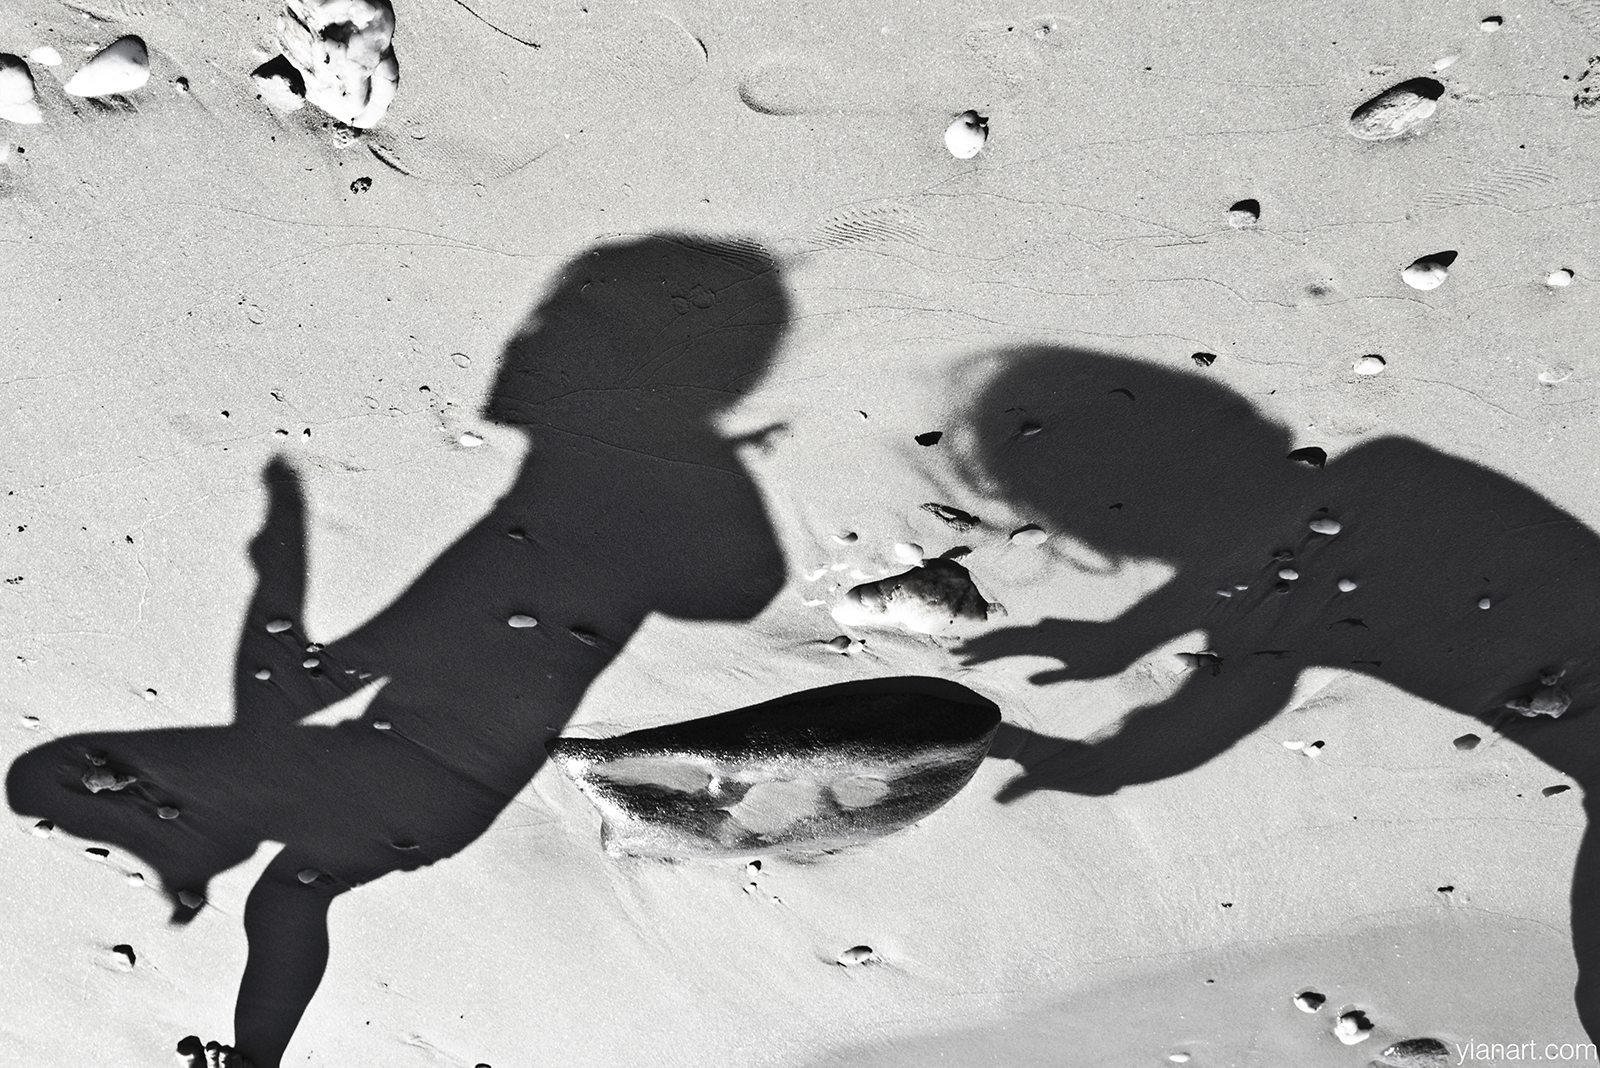 Shadows Photography Project in Black & White @ Tinos Island 2011